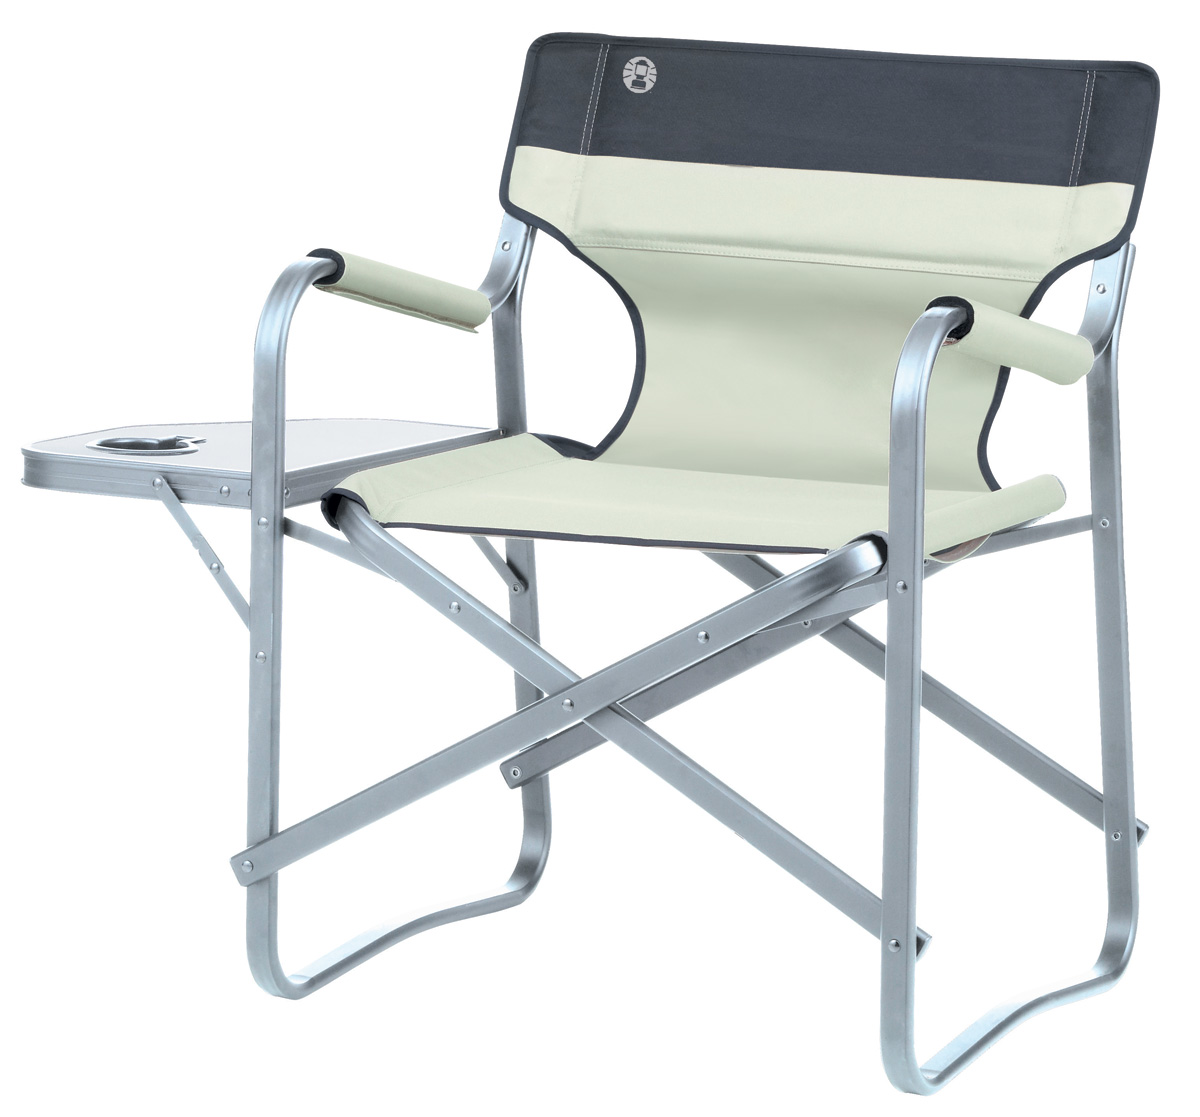 Coleman Deck Chair with side table